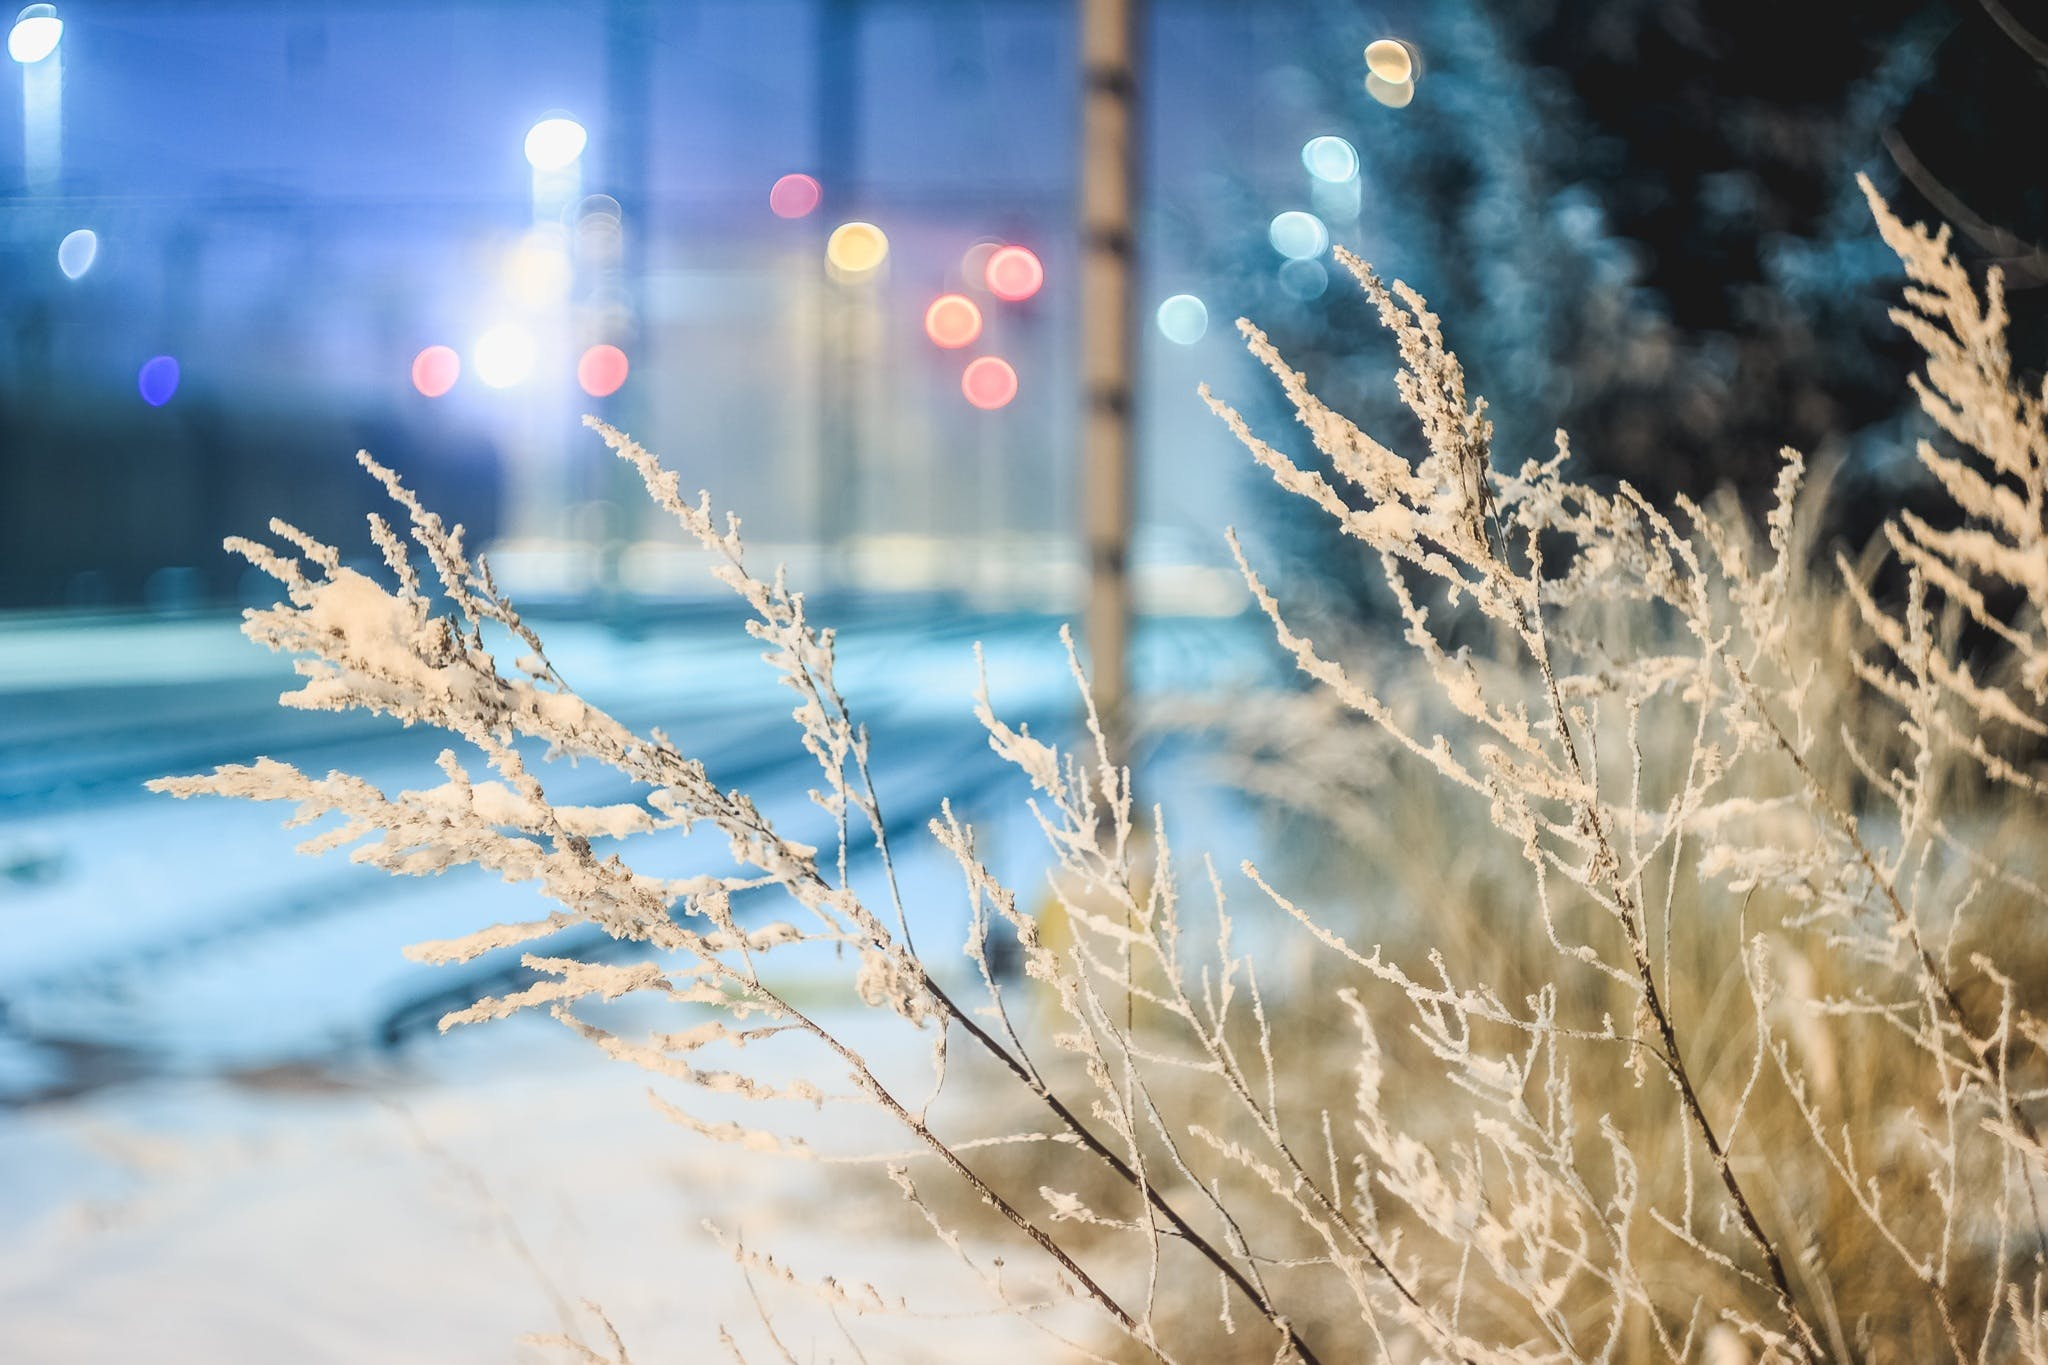 Close-up of Frozen Plants at Night